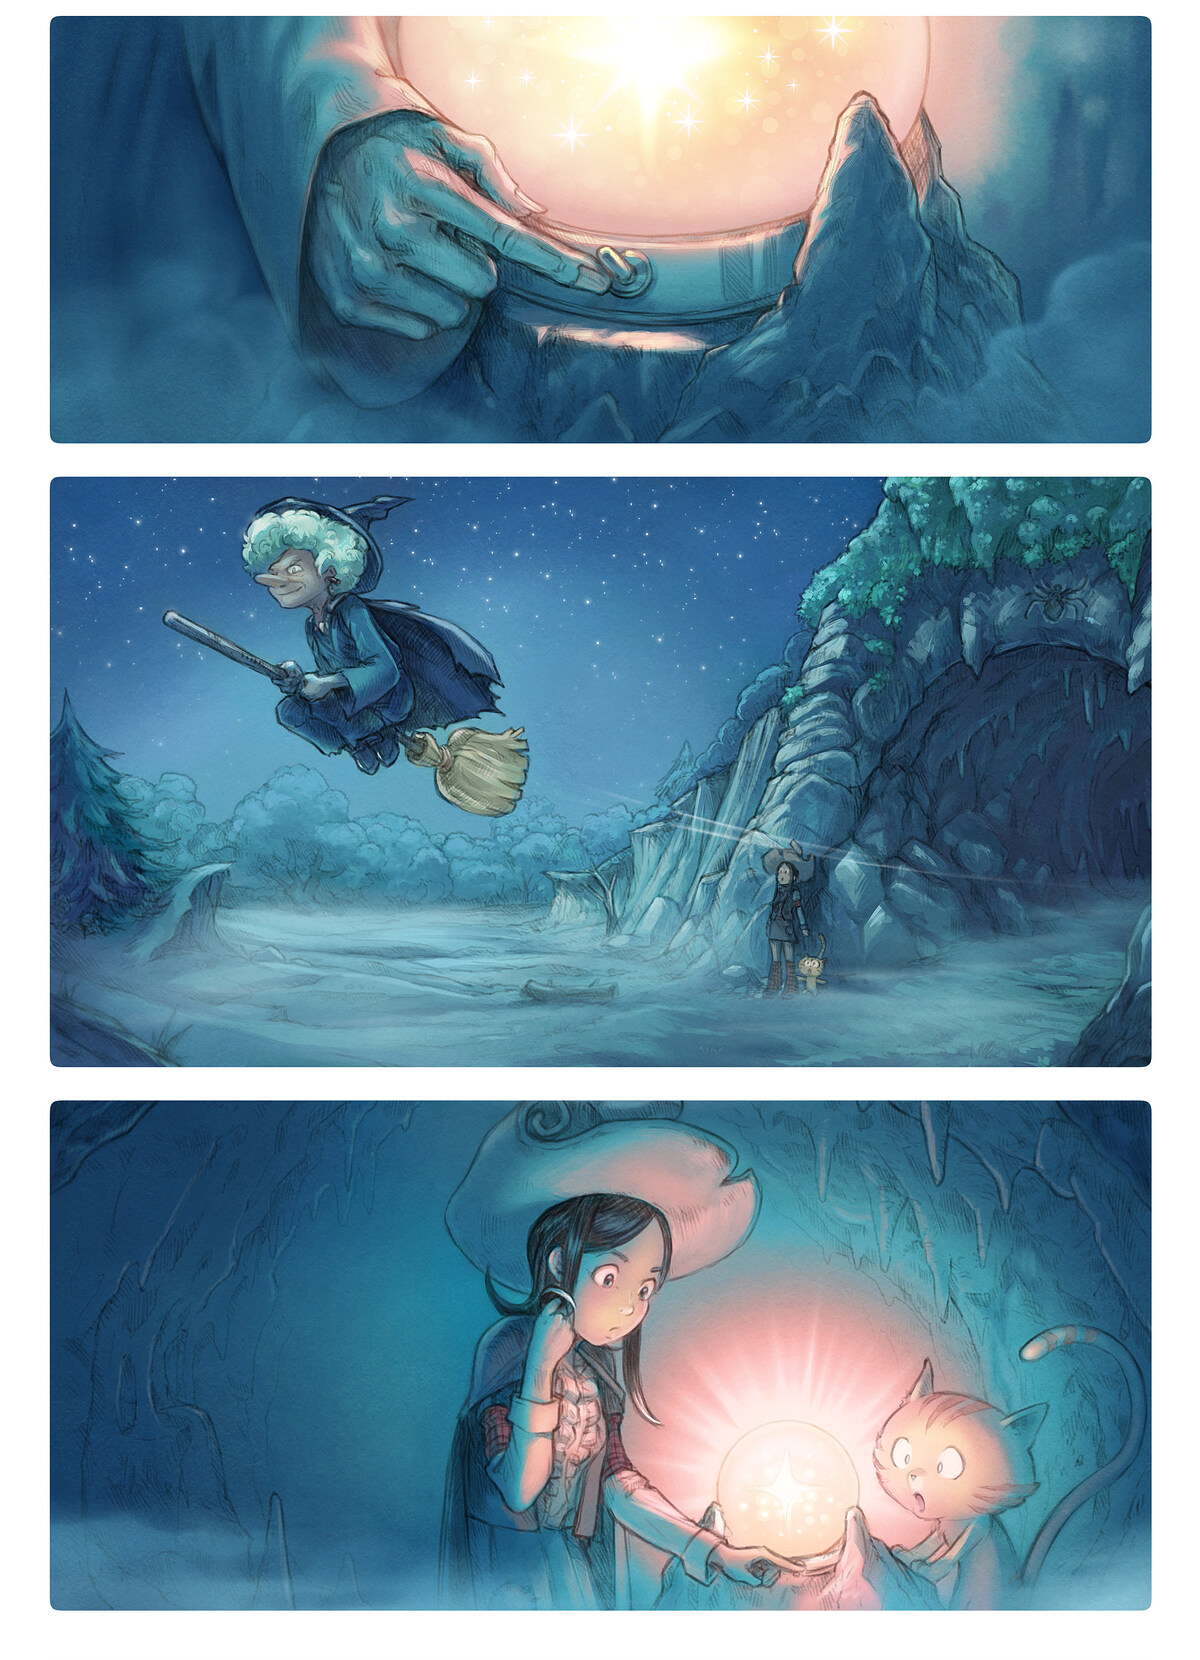 A webcomic page of Pepper&Carrot, Tập 15 [vi], trang 2